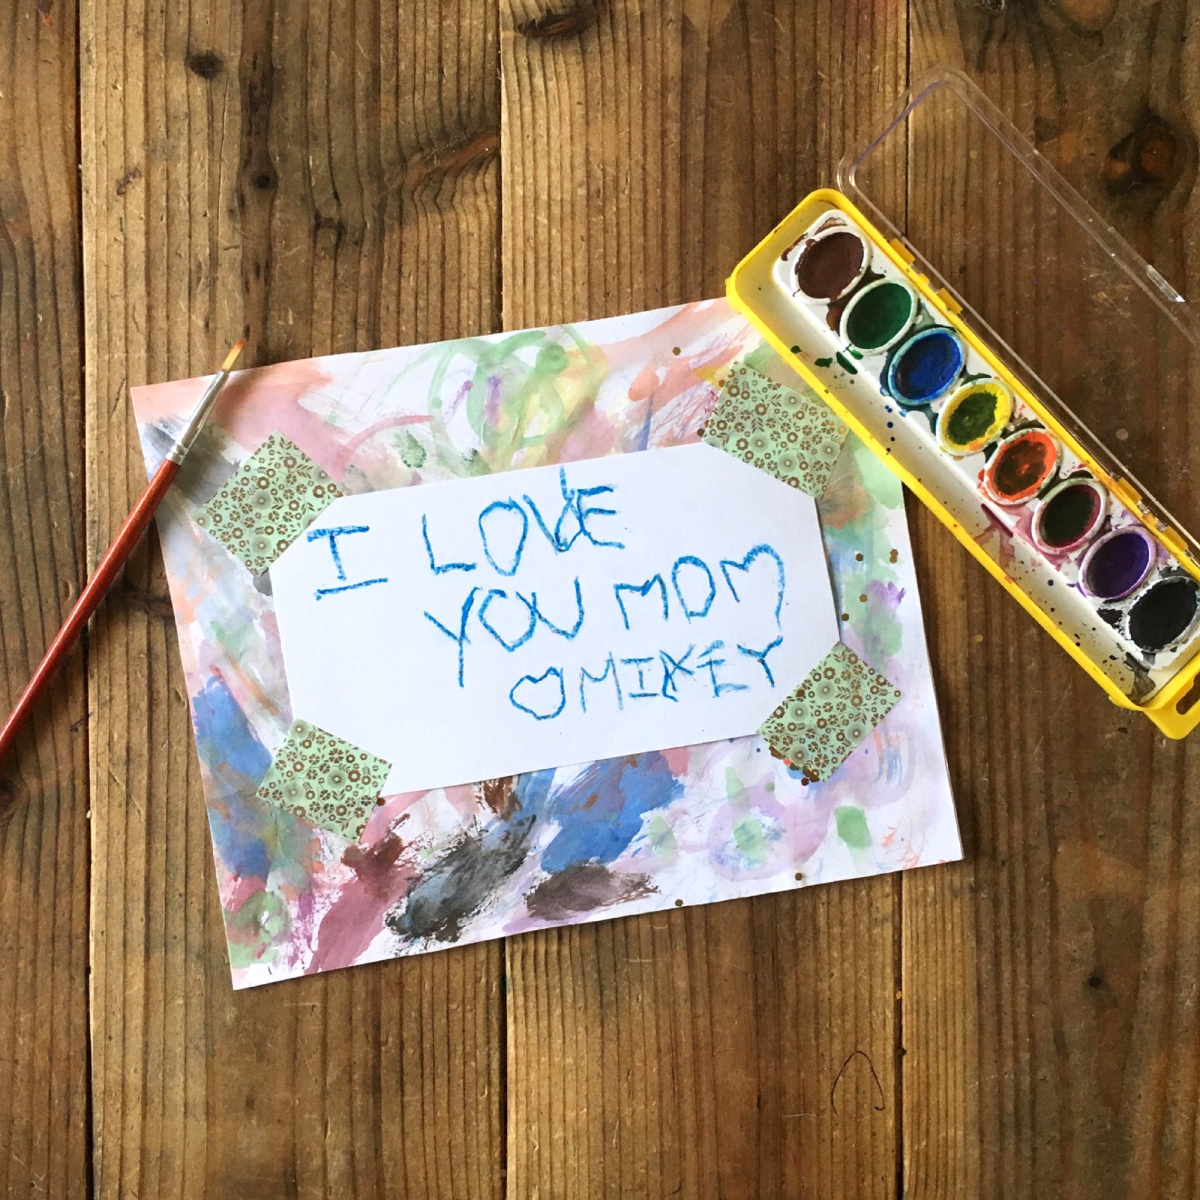 DIY Mother's Day Serving Tray - Watercolor Painting